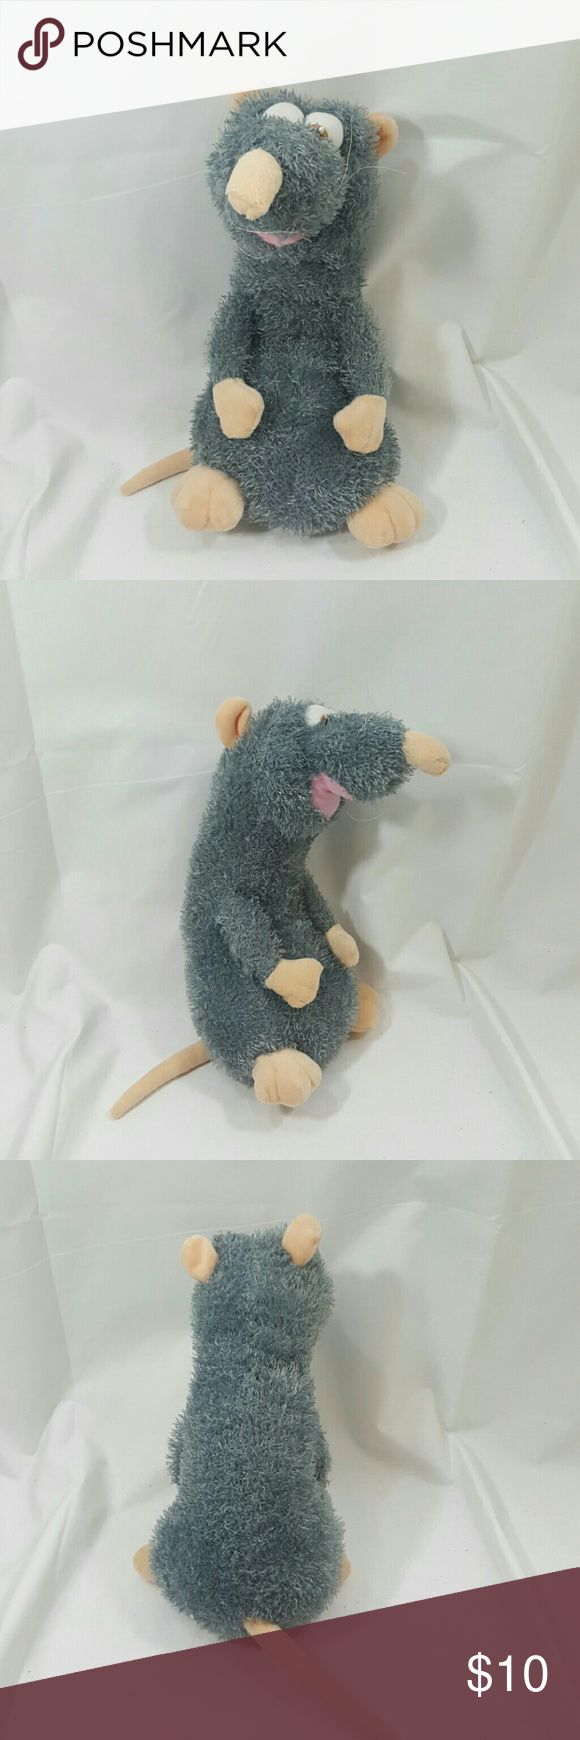 Large Disney Ratatouille Chef Remy Rat Plush EUC. Stuffed soft plush rat from the Disney Pixar movie ratatouille. Great gift for that foodie or Chef on your life. It is 11 inches Tall. Toy Factory.        G1 toy factory Other